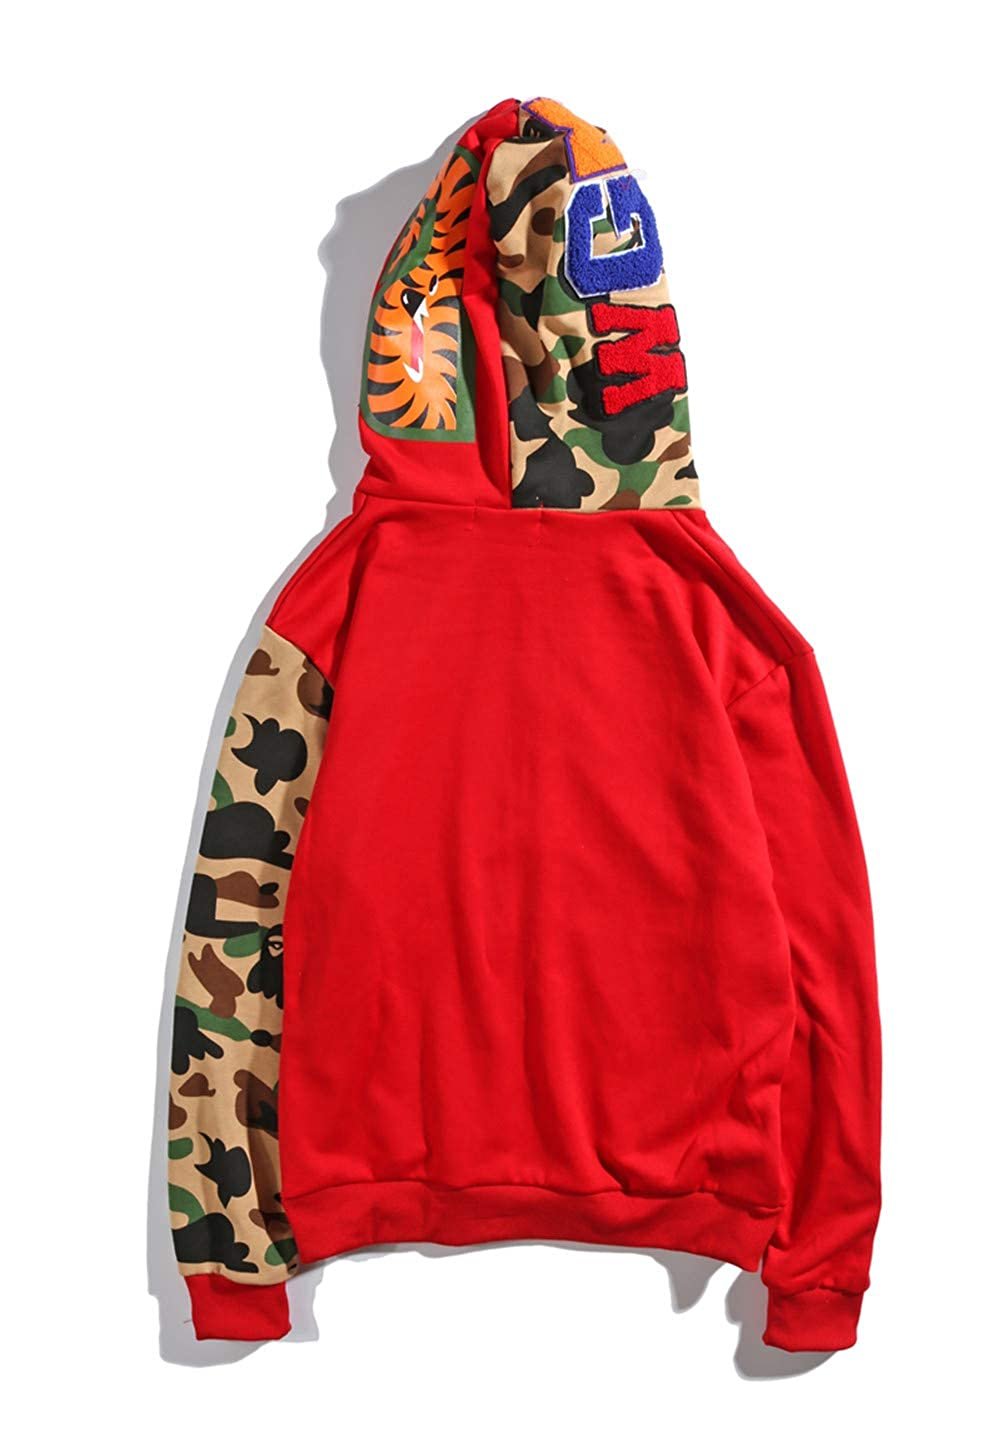 Bape Clothing Men|Bape Boy Shark Open Chest Zip Hoodie Girls for Sale: Amazon.es: Ropa y accesorios